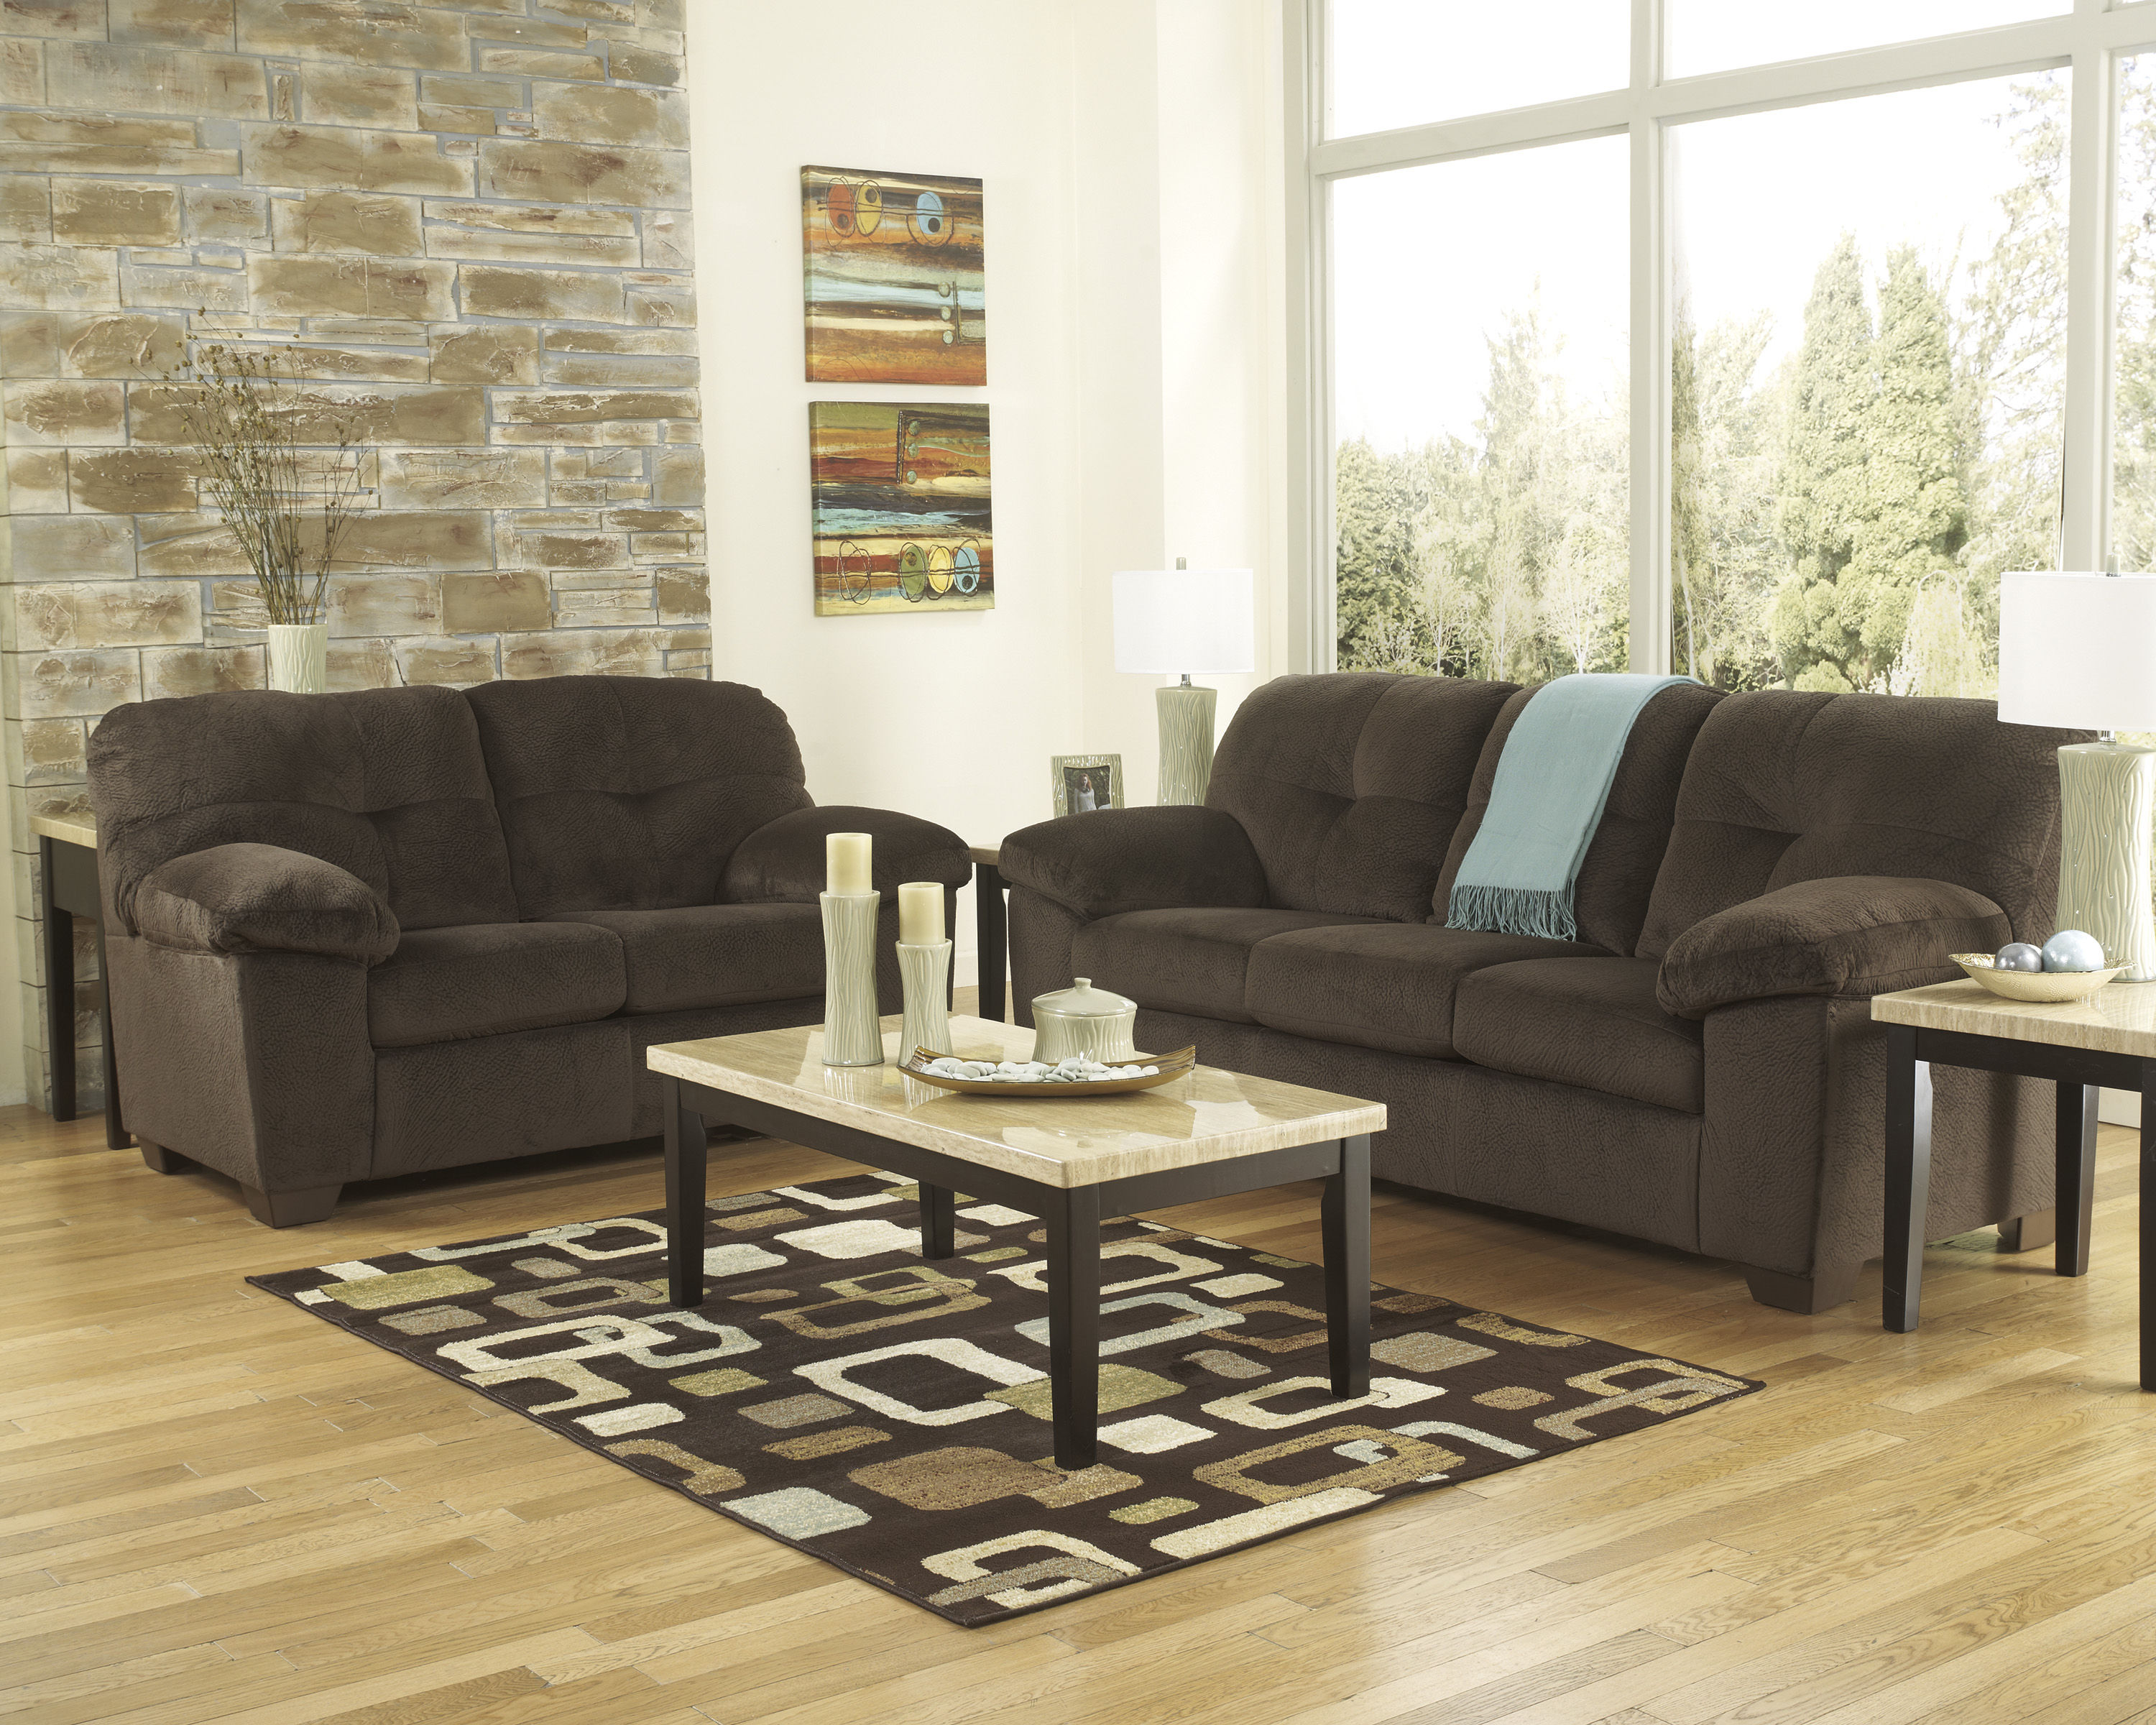 Inger contemporary chocolate fabric living room set the for Best living room set deals